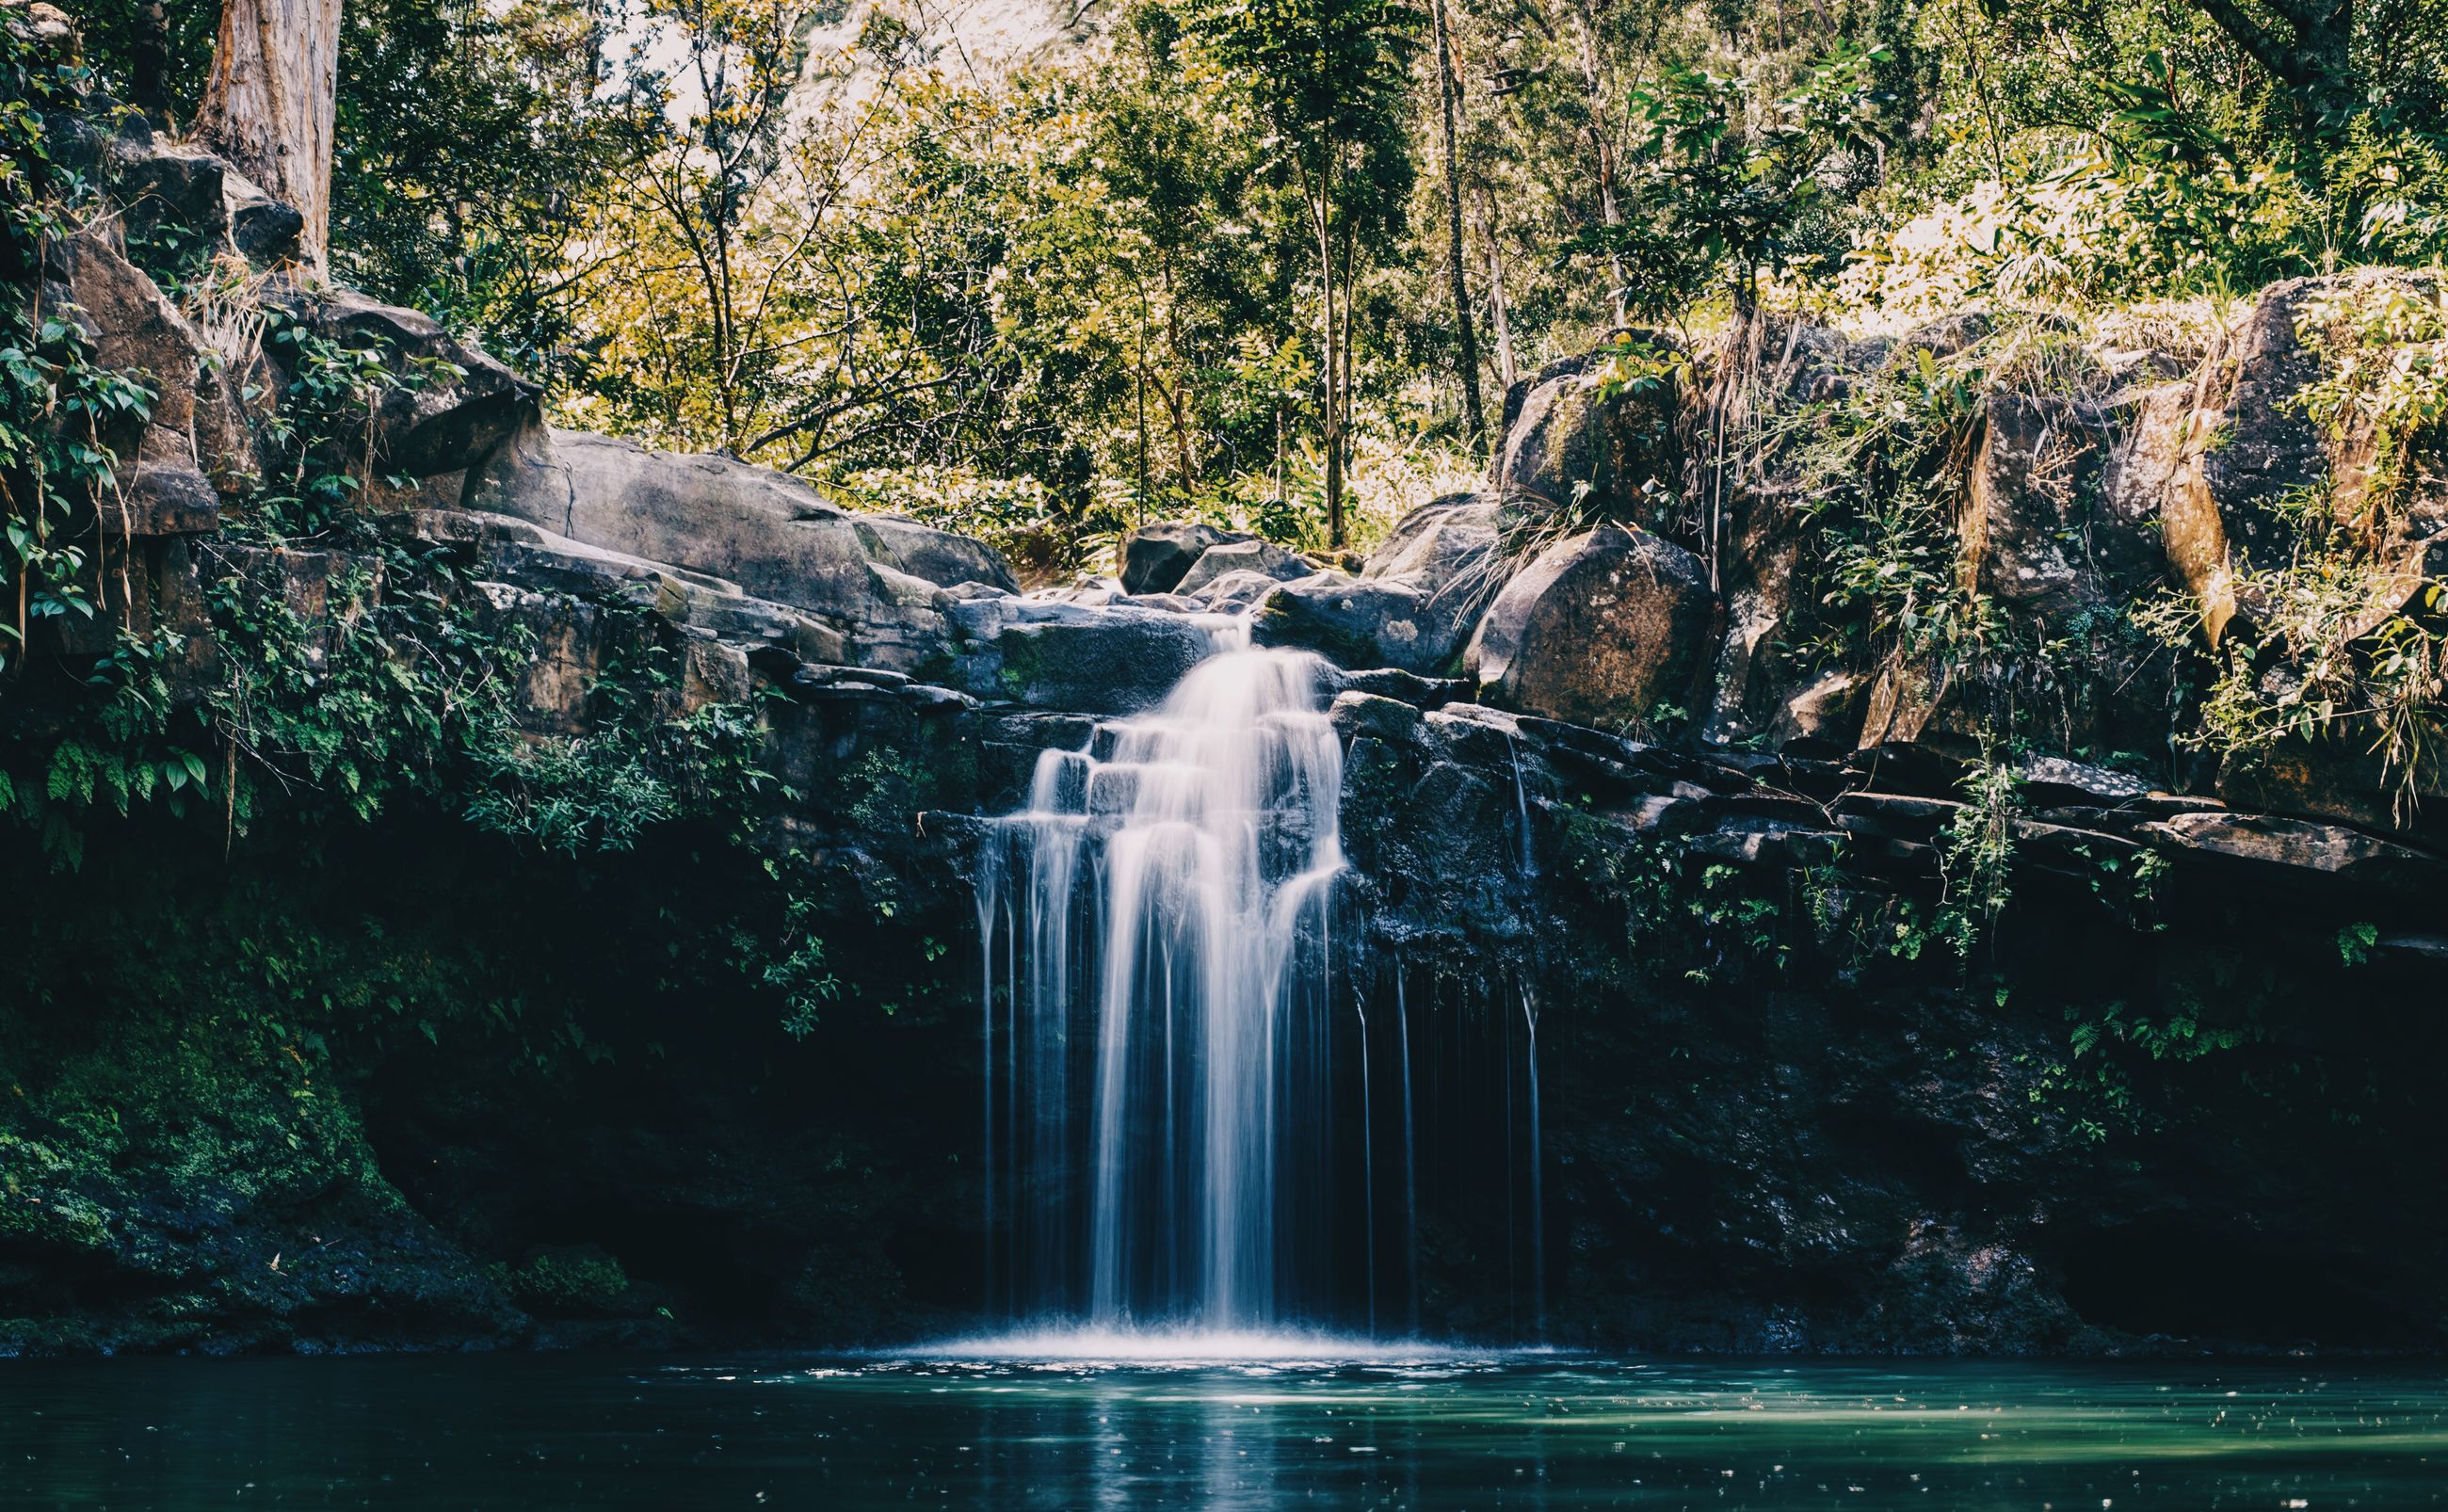 water, flowing water, tree, motion, waterfall, waterfront, flowing, fountain, long exposure, nature, splashing, beauty in nature, reflection, growth, forest, scenics, plant, day, tranquility, outdoors